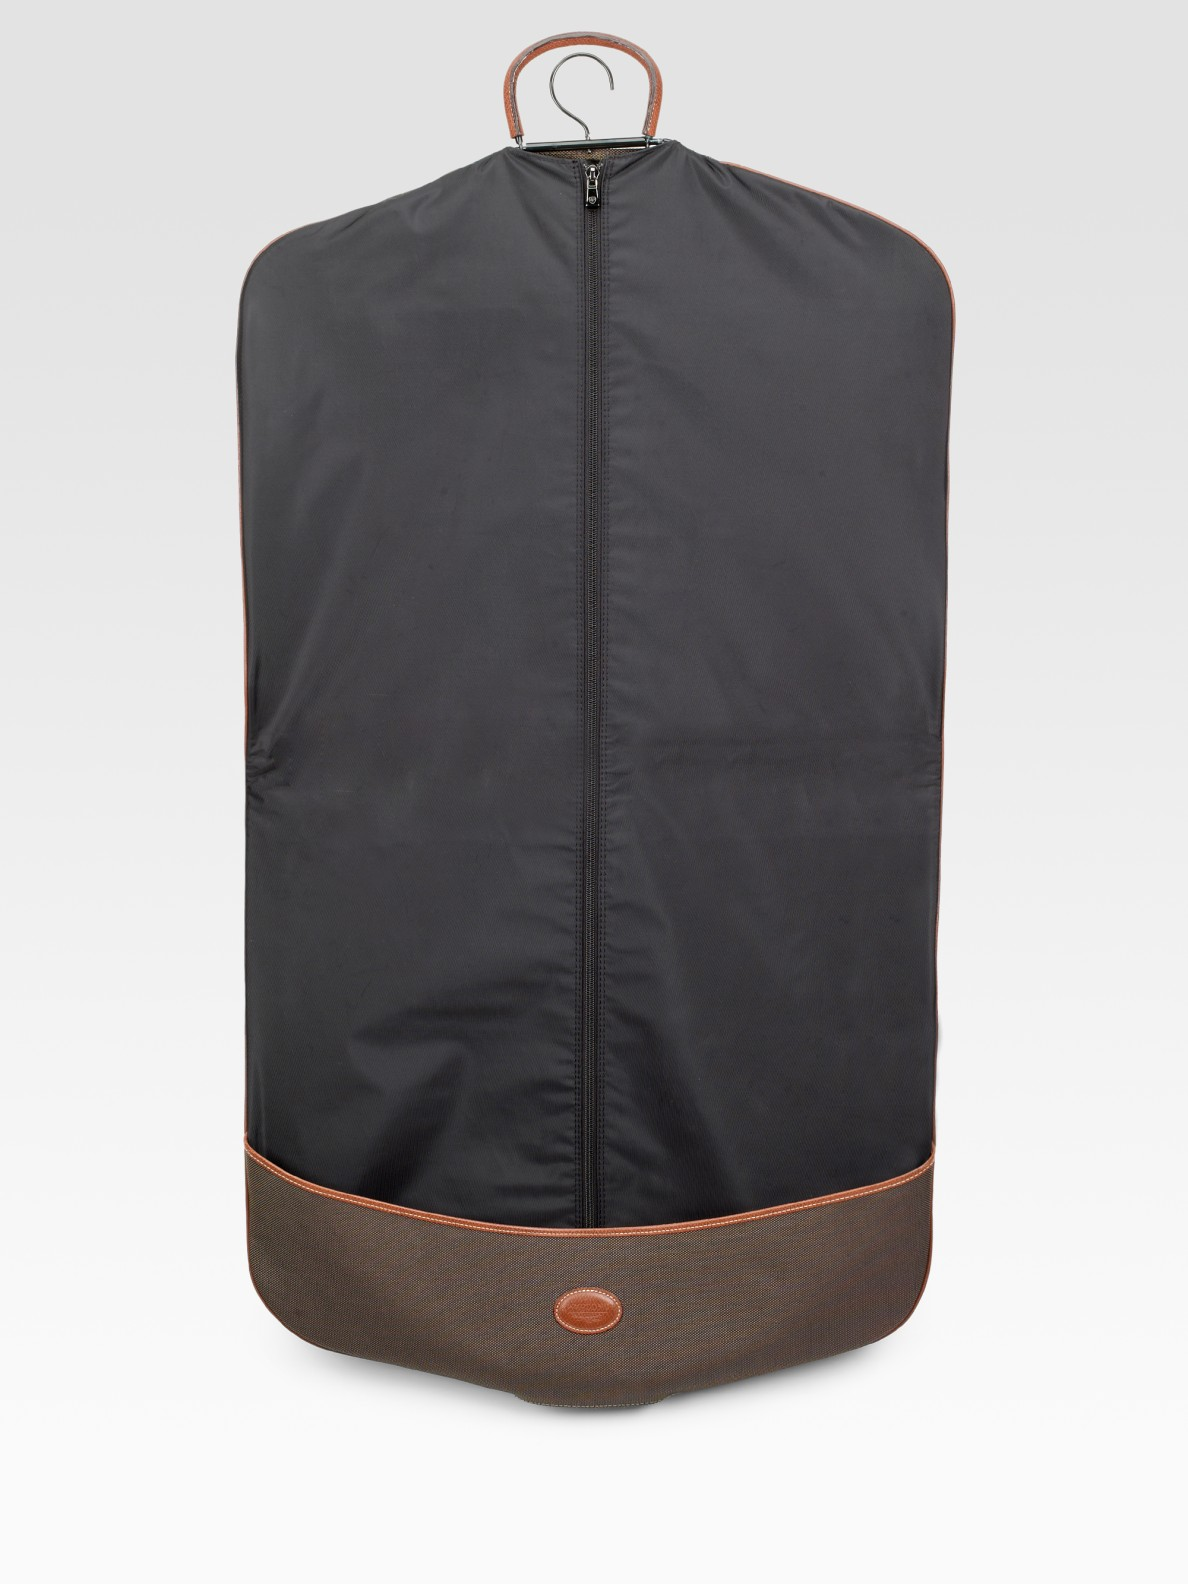 Lyst Longchamp Boxford Hanging Garment Bag In Brown For Men